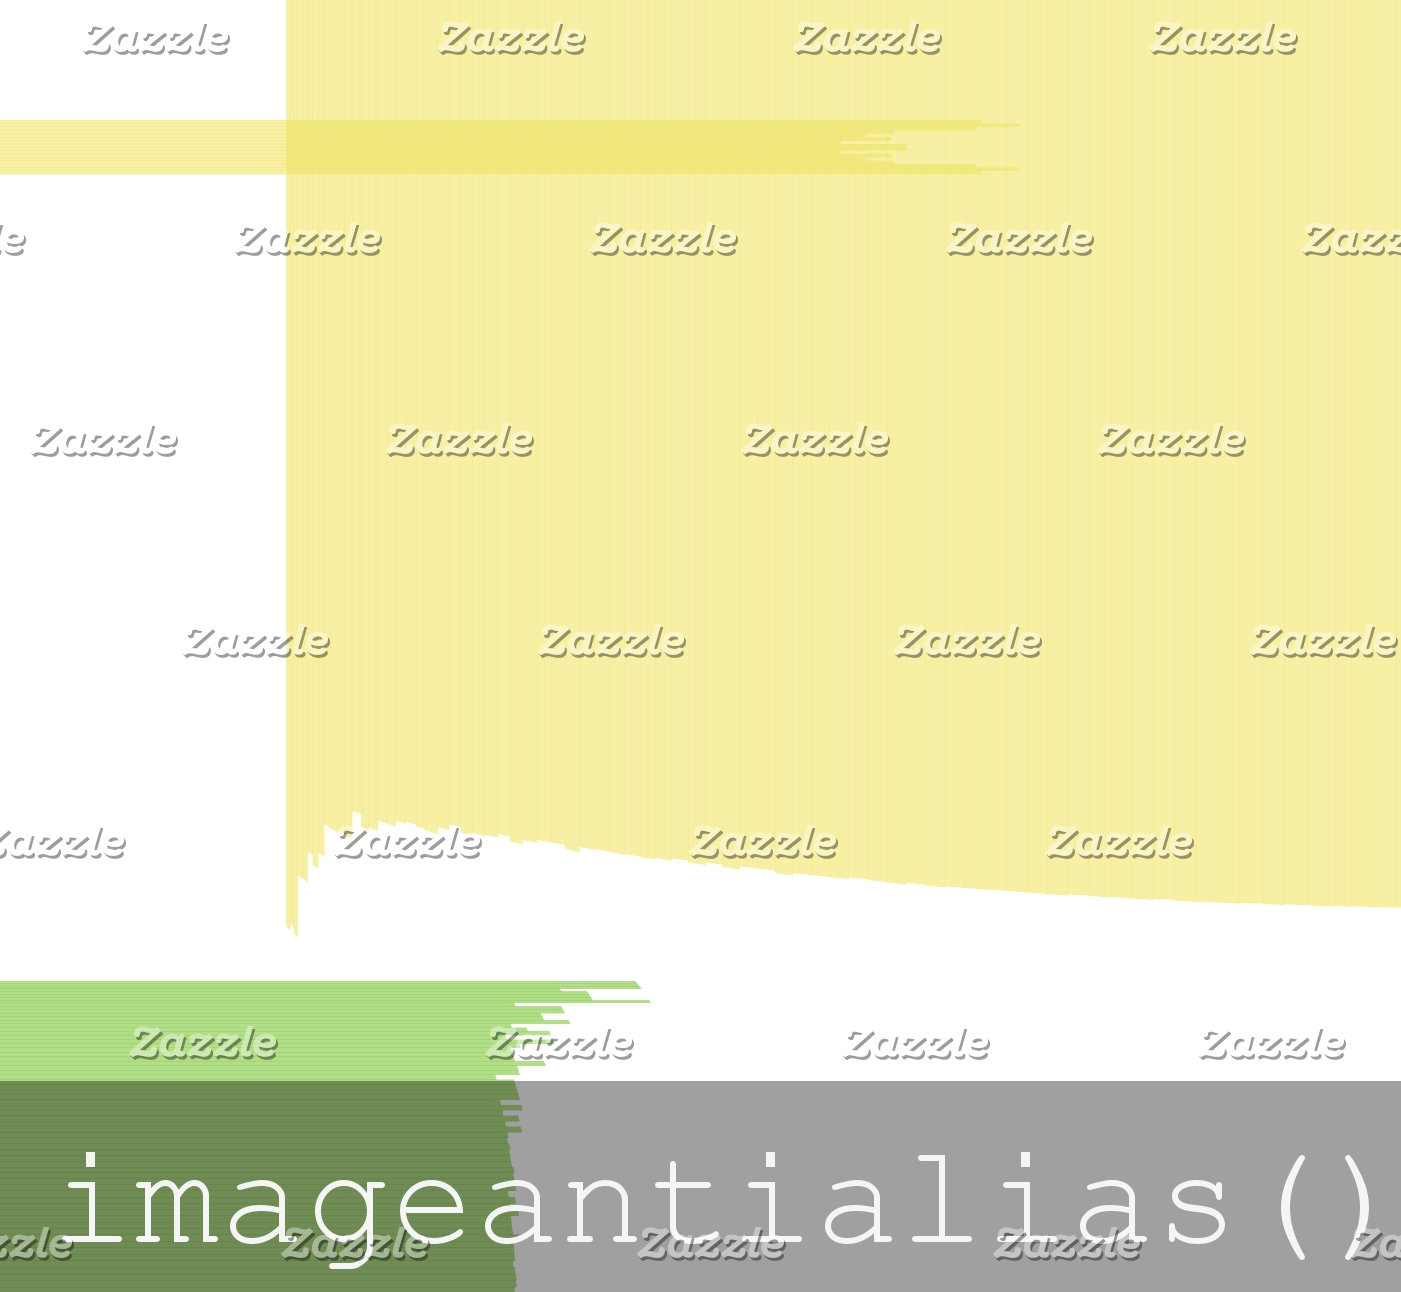 imageantialias() Designs